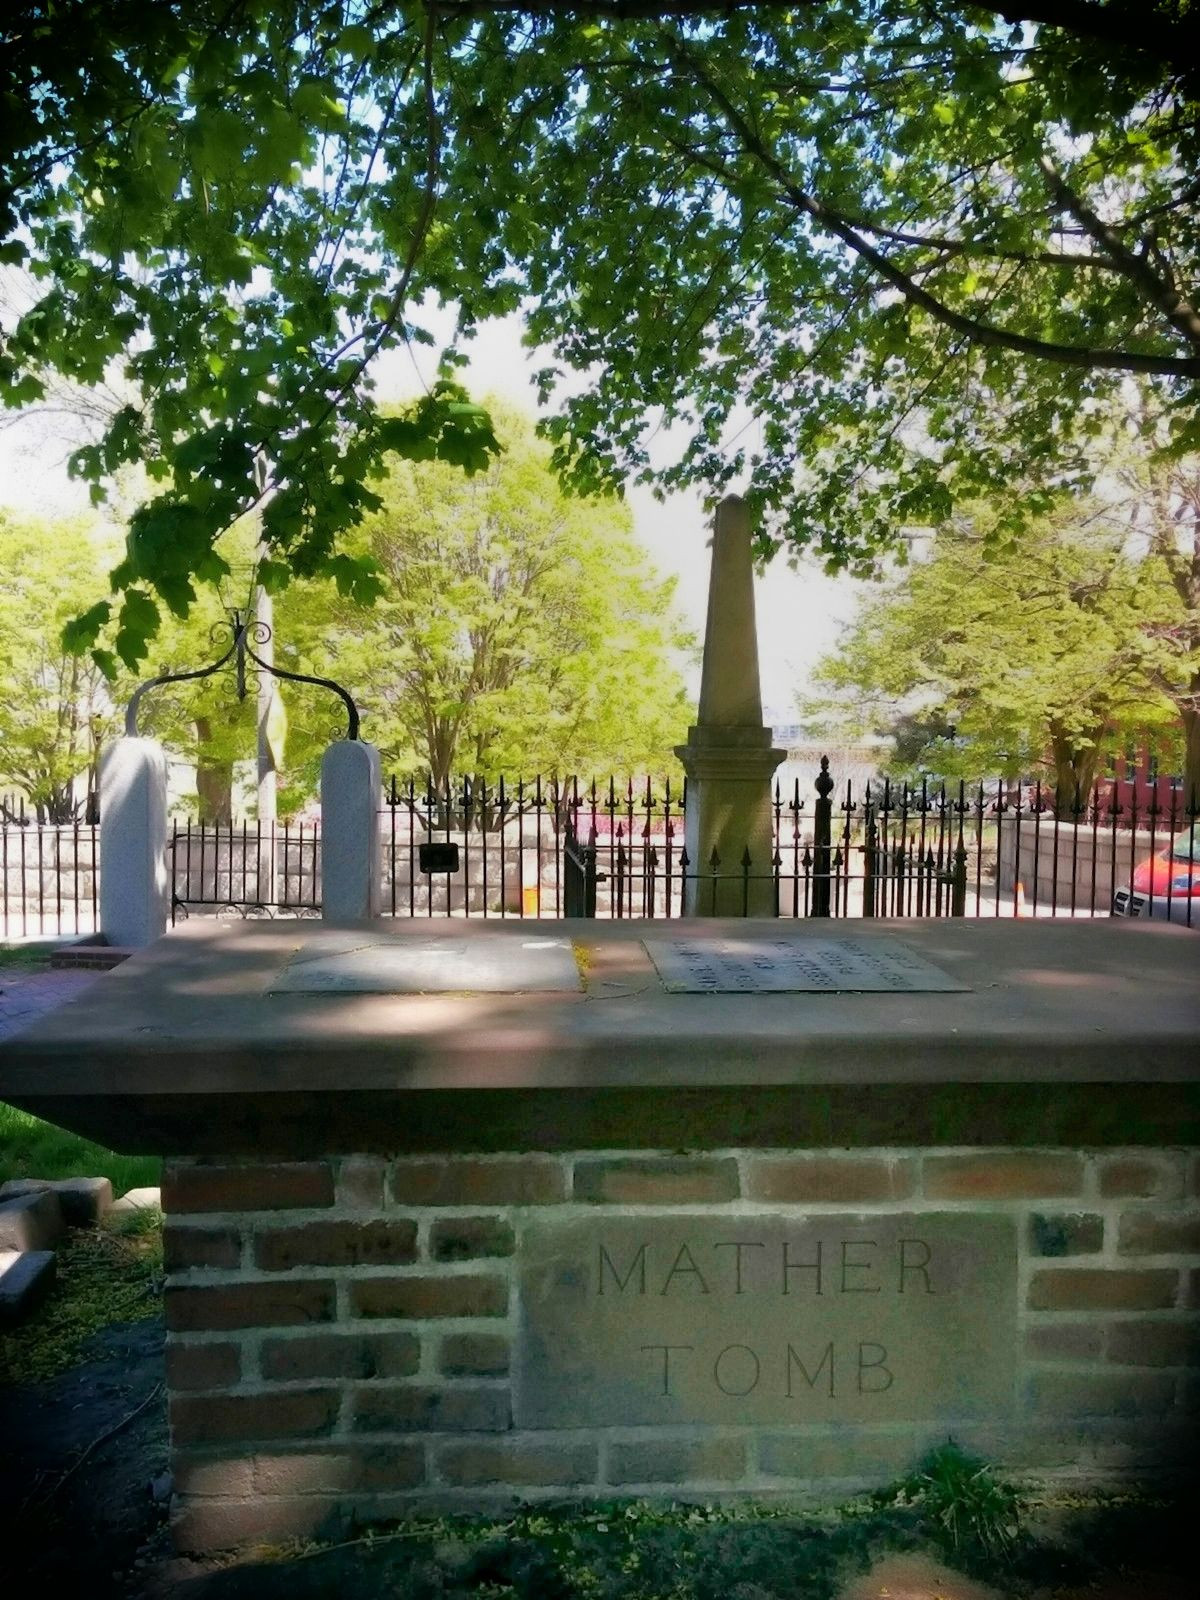 Mather Tomb at Copp's Hill Burying Ground